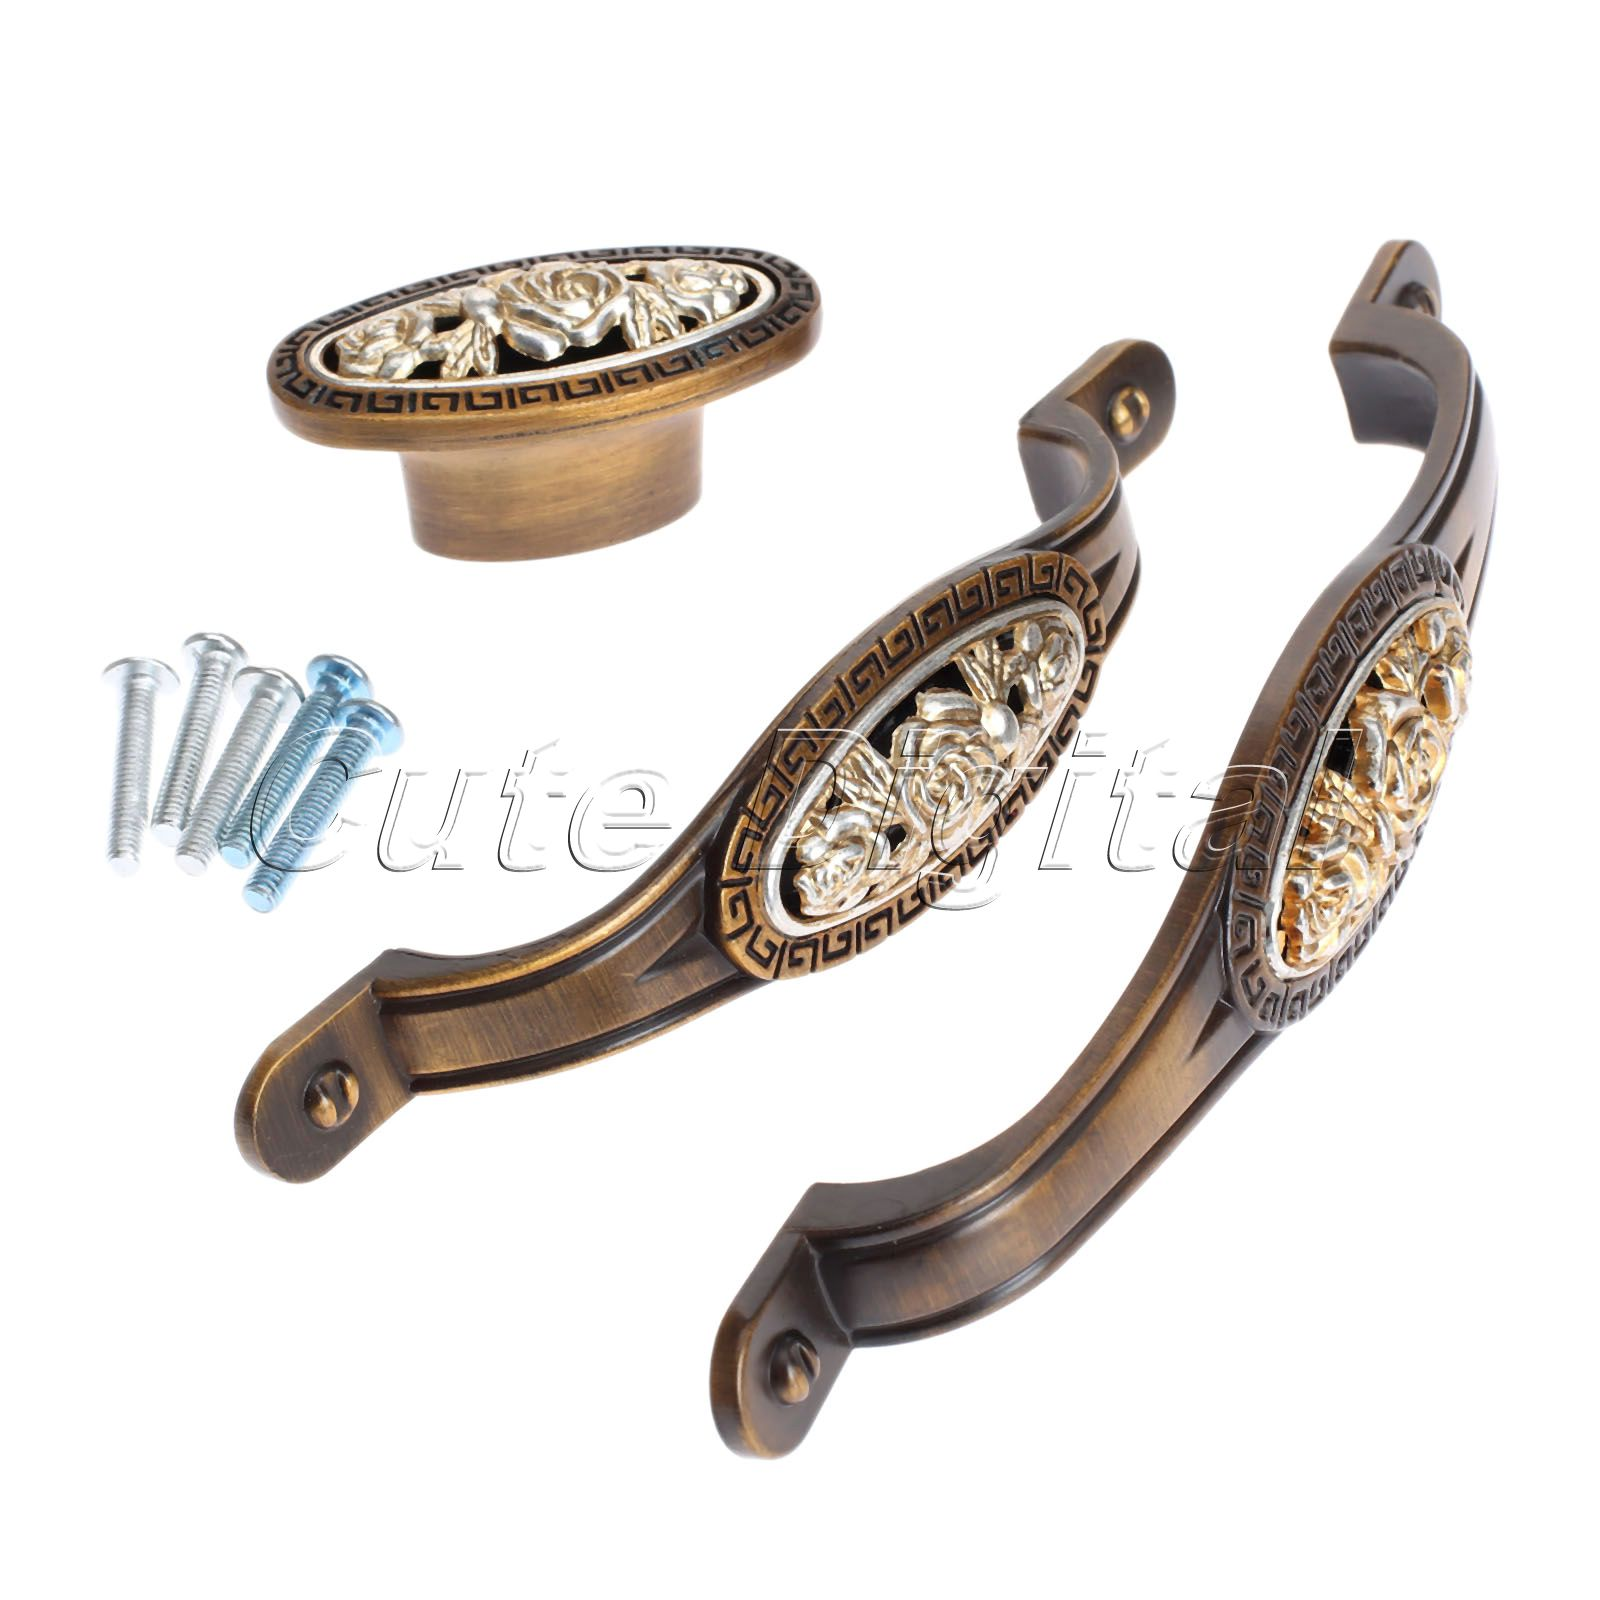 Vintage Flower Alloy Door Handles Cabinet Drawer Wardrobe Closet Pull Handle Furniture Decorative Knobs Single Hole/96mm/128mm hot brown handle single hole leather door handles cabinet cupboard drawer pull knobs furniture kitchen accessories 96 160 192mm